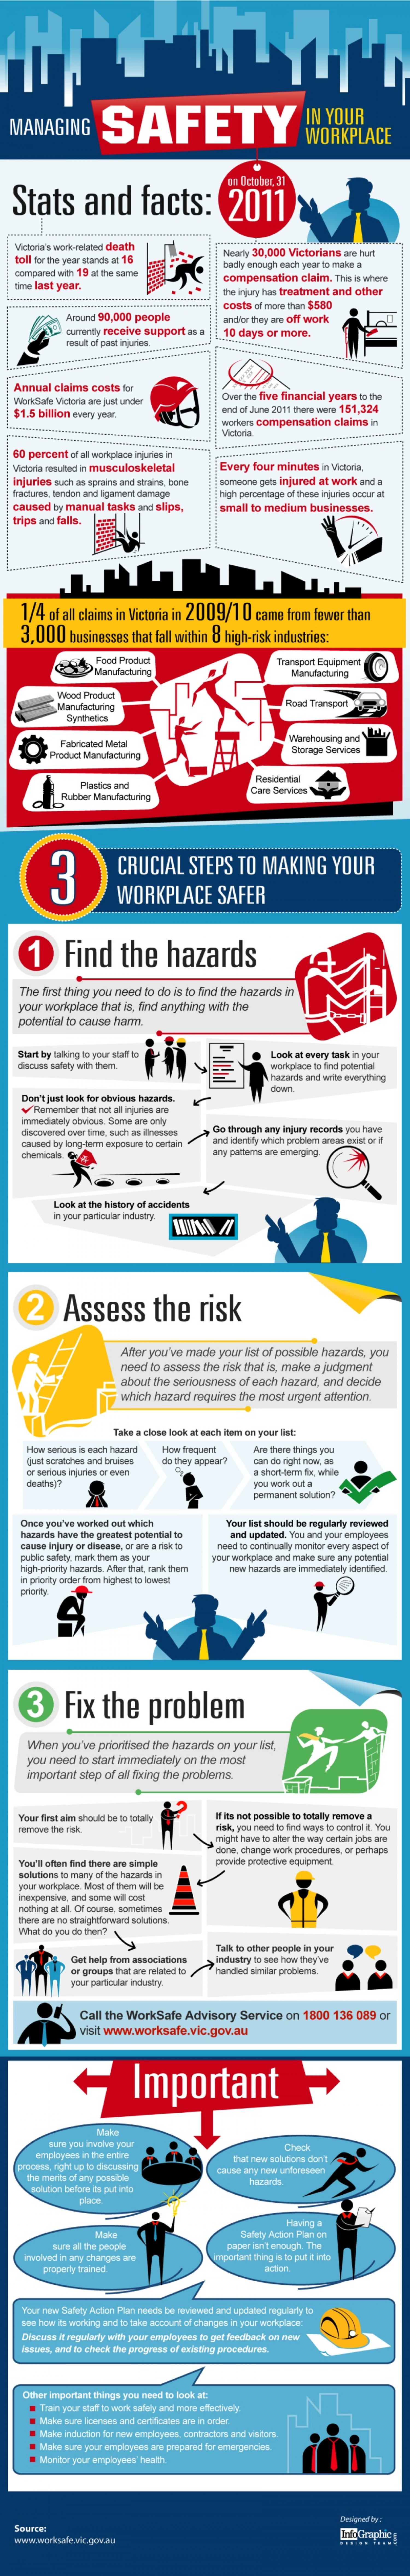 Managing Safety in your Workplace Infographic